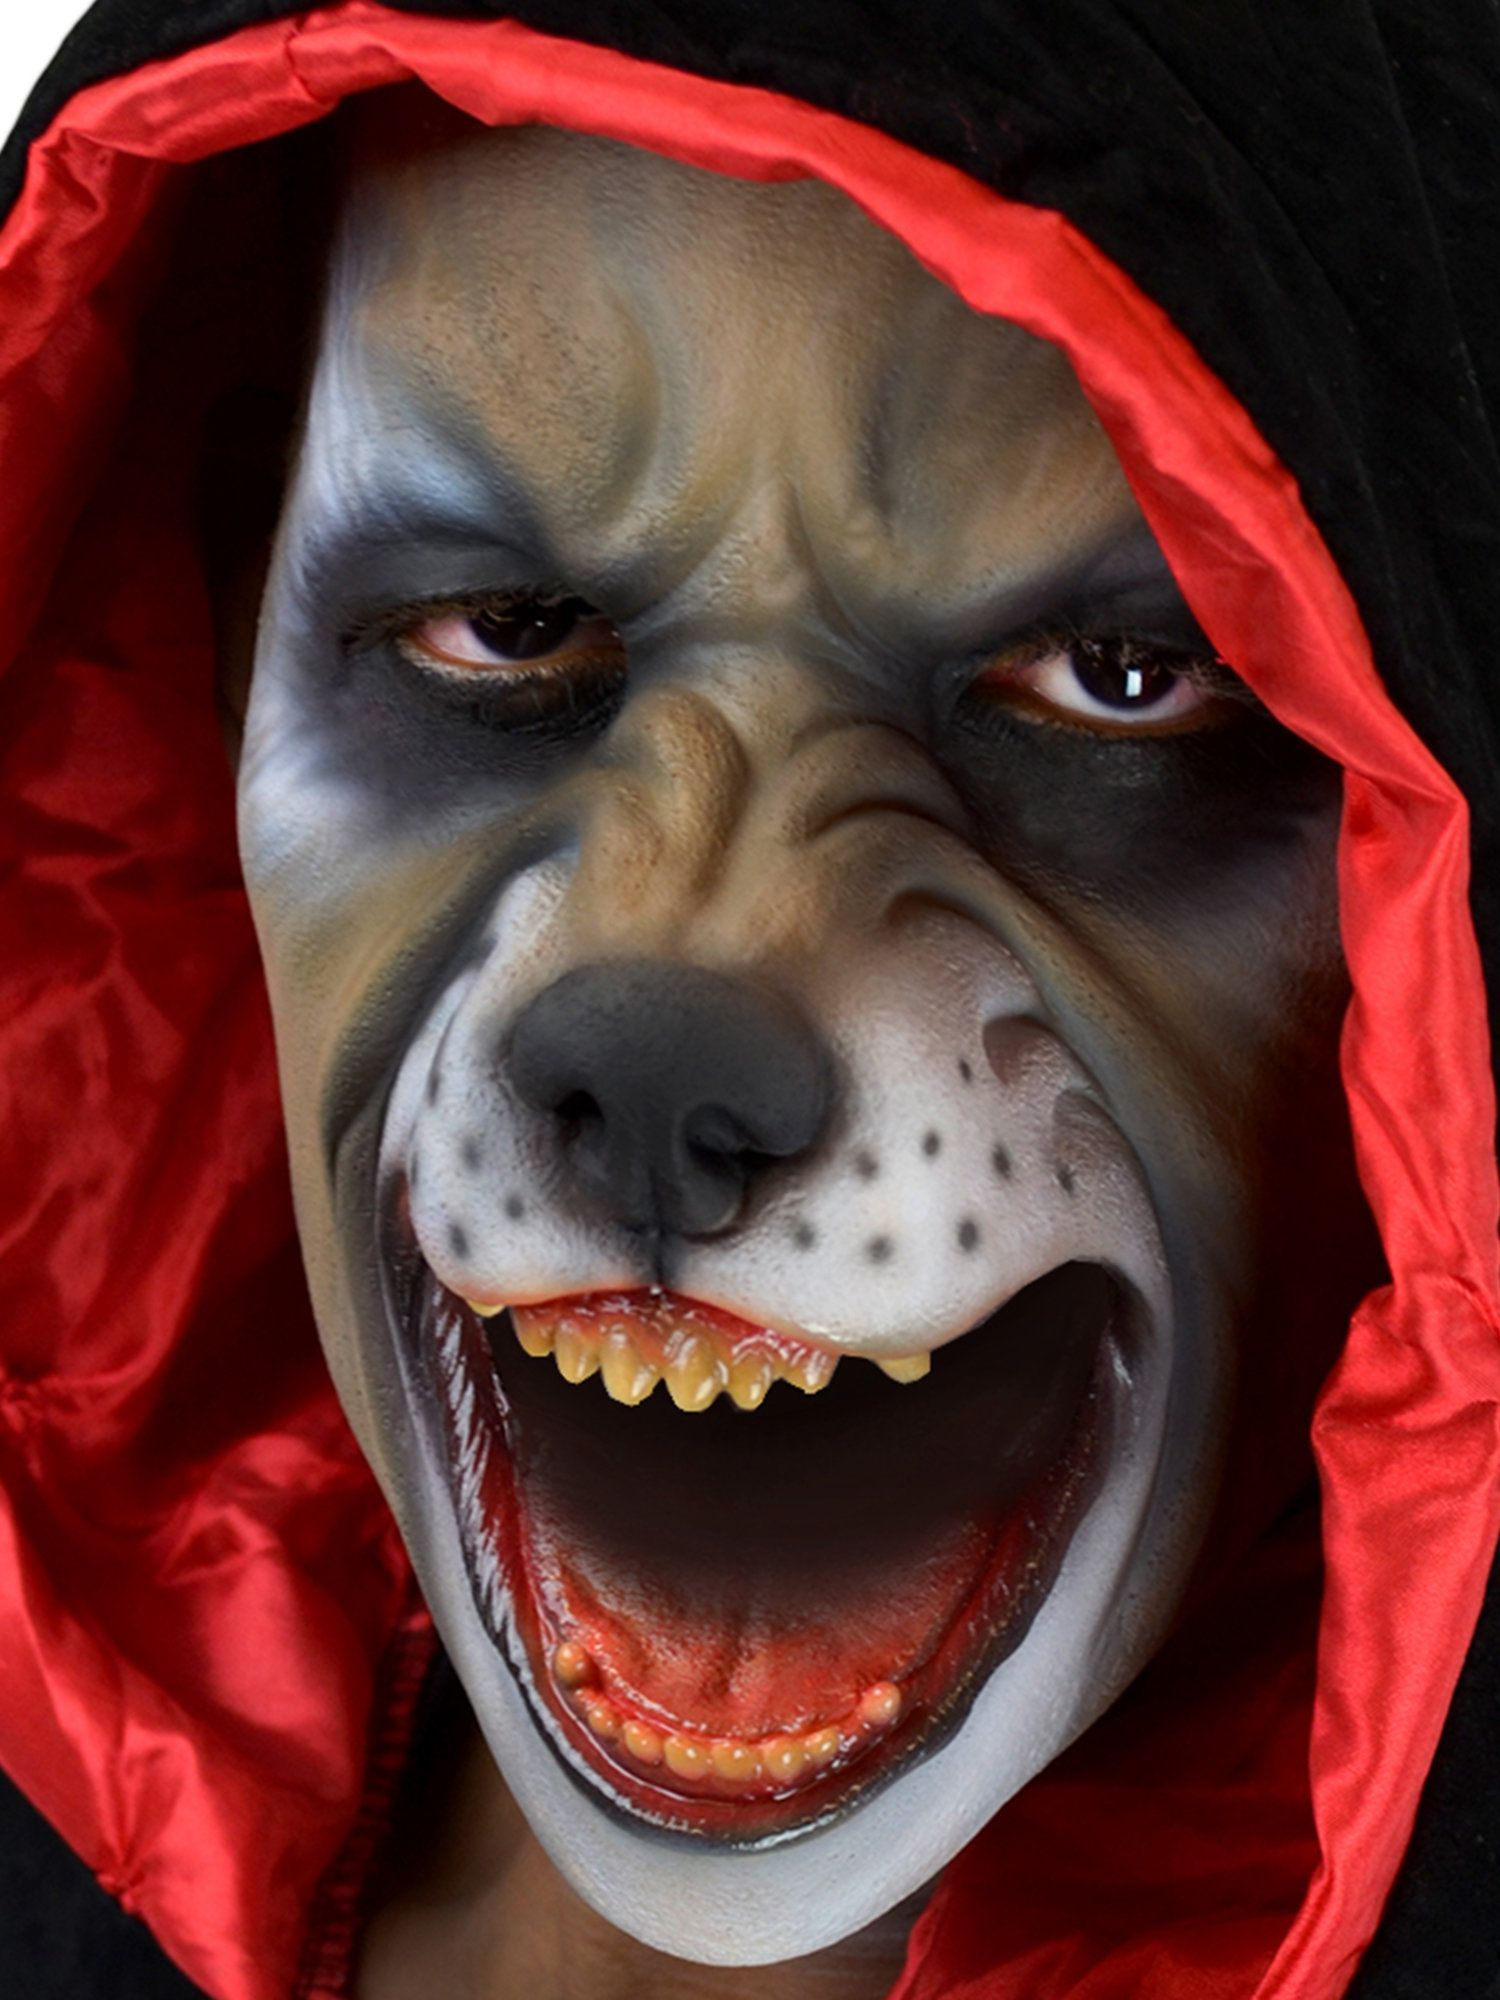 Big Bad Wolf Foam Prosthetic Costume Accessories For 2018